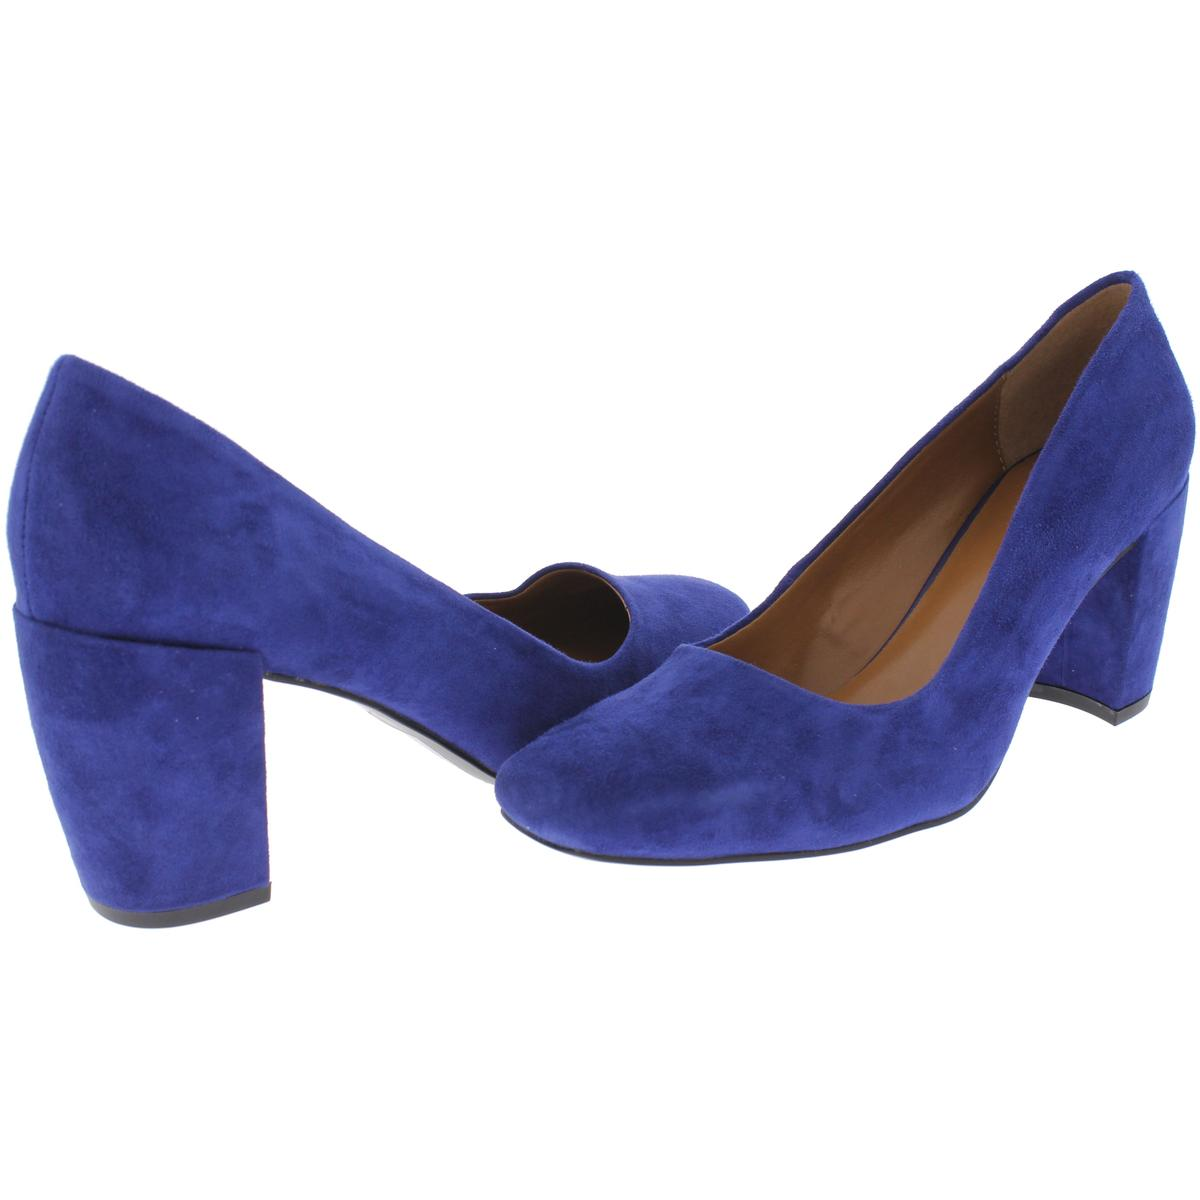 H-Halston-Womens-Whitney-Square-Toe-Block-Heel-Pumps-Shoes-BHFO-0883 thumbnail 9